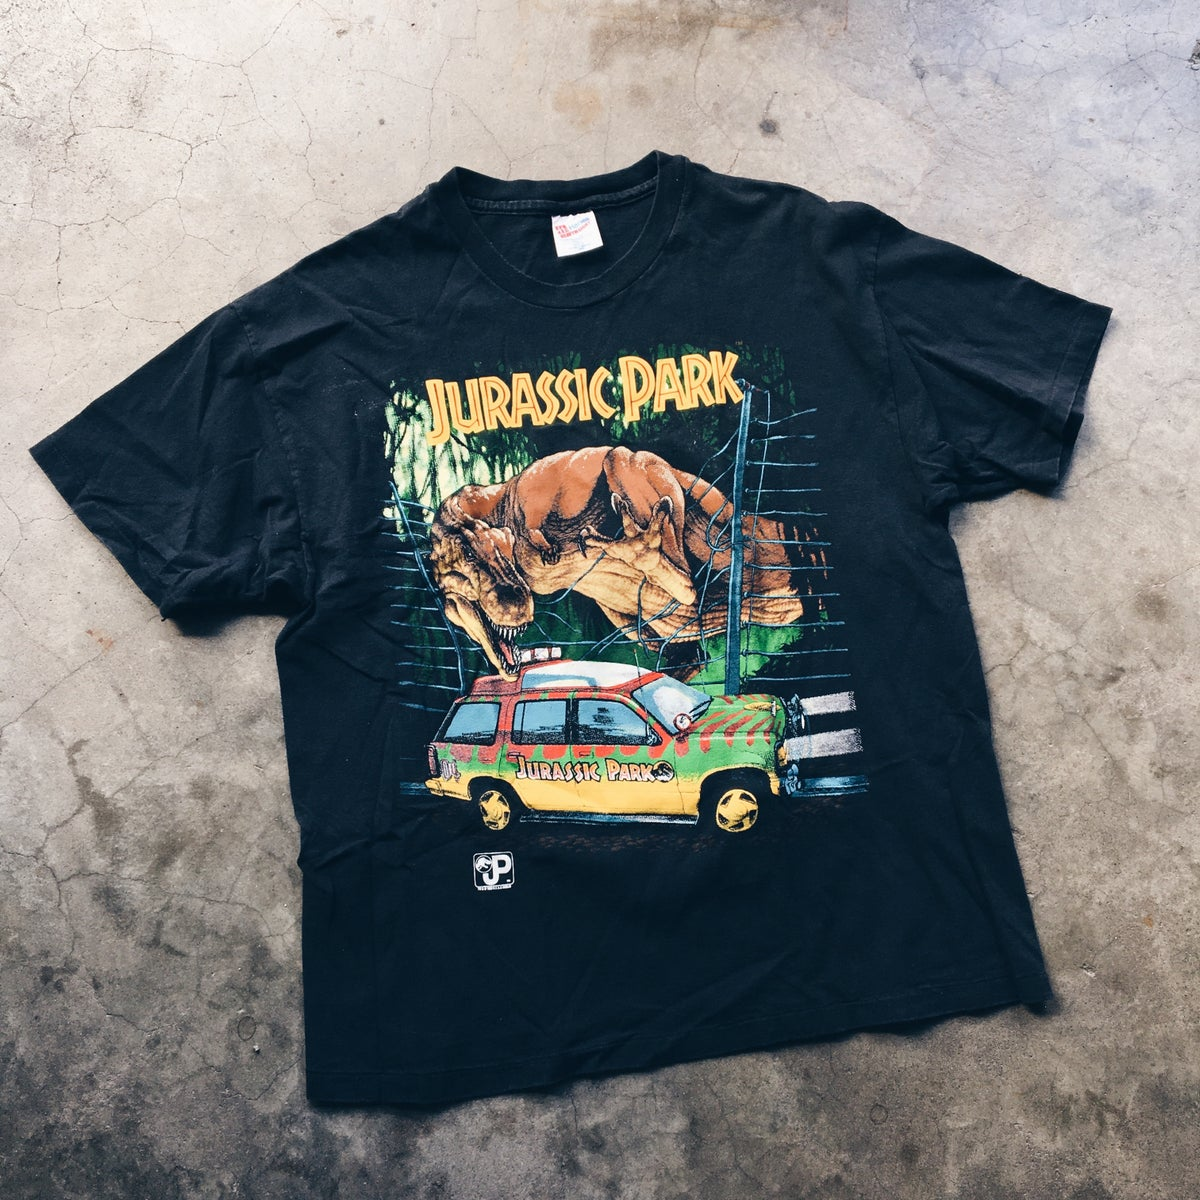 Image of Original 1993 Made In USA Jurassic Park Tee.